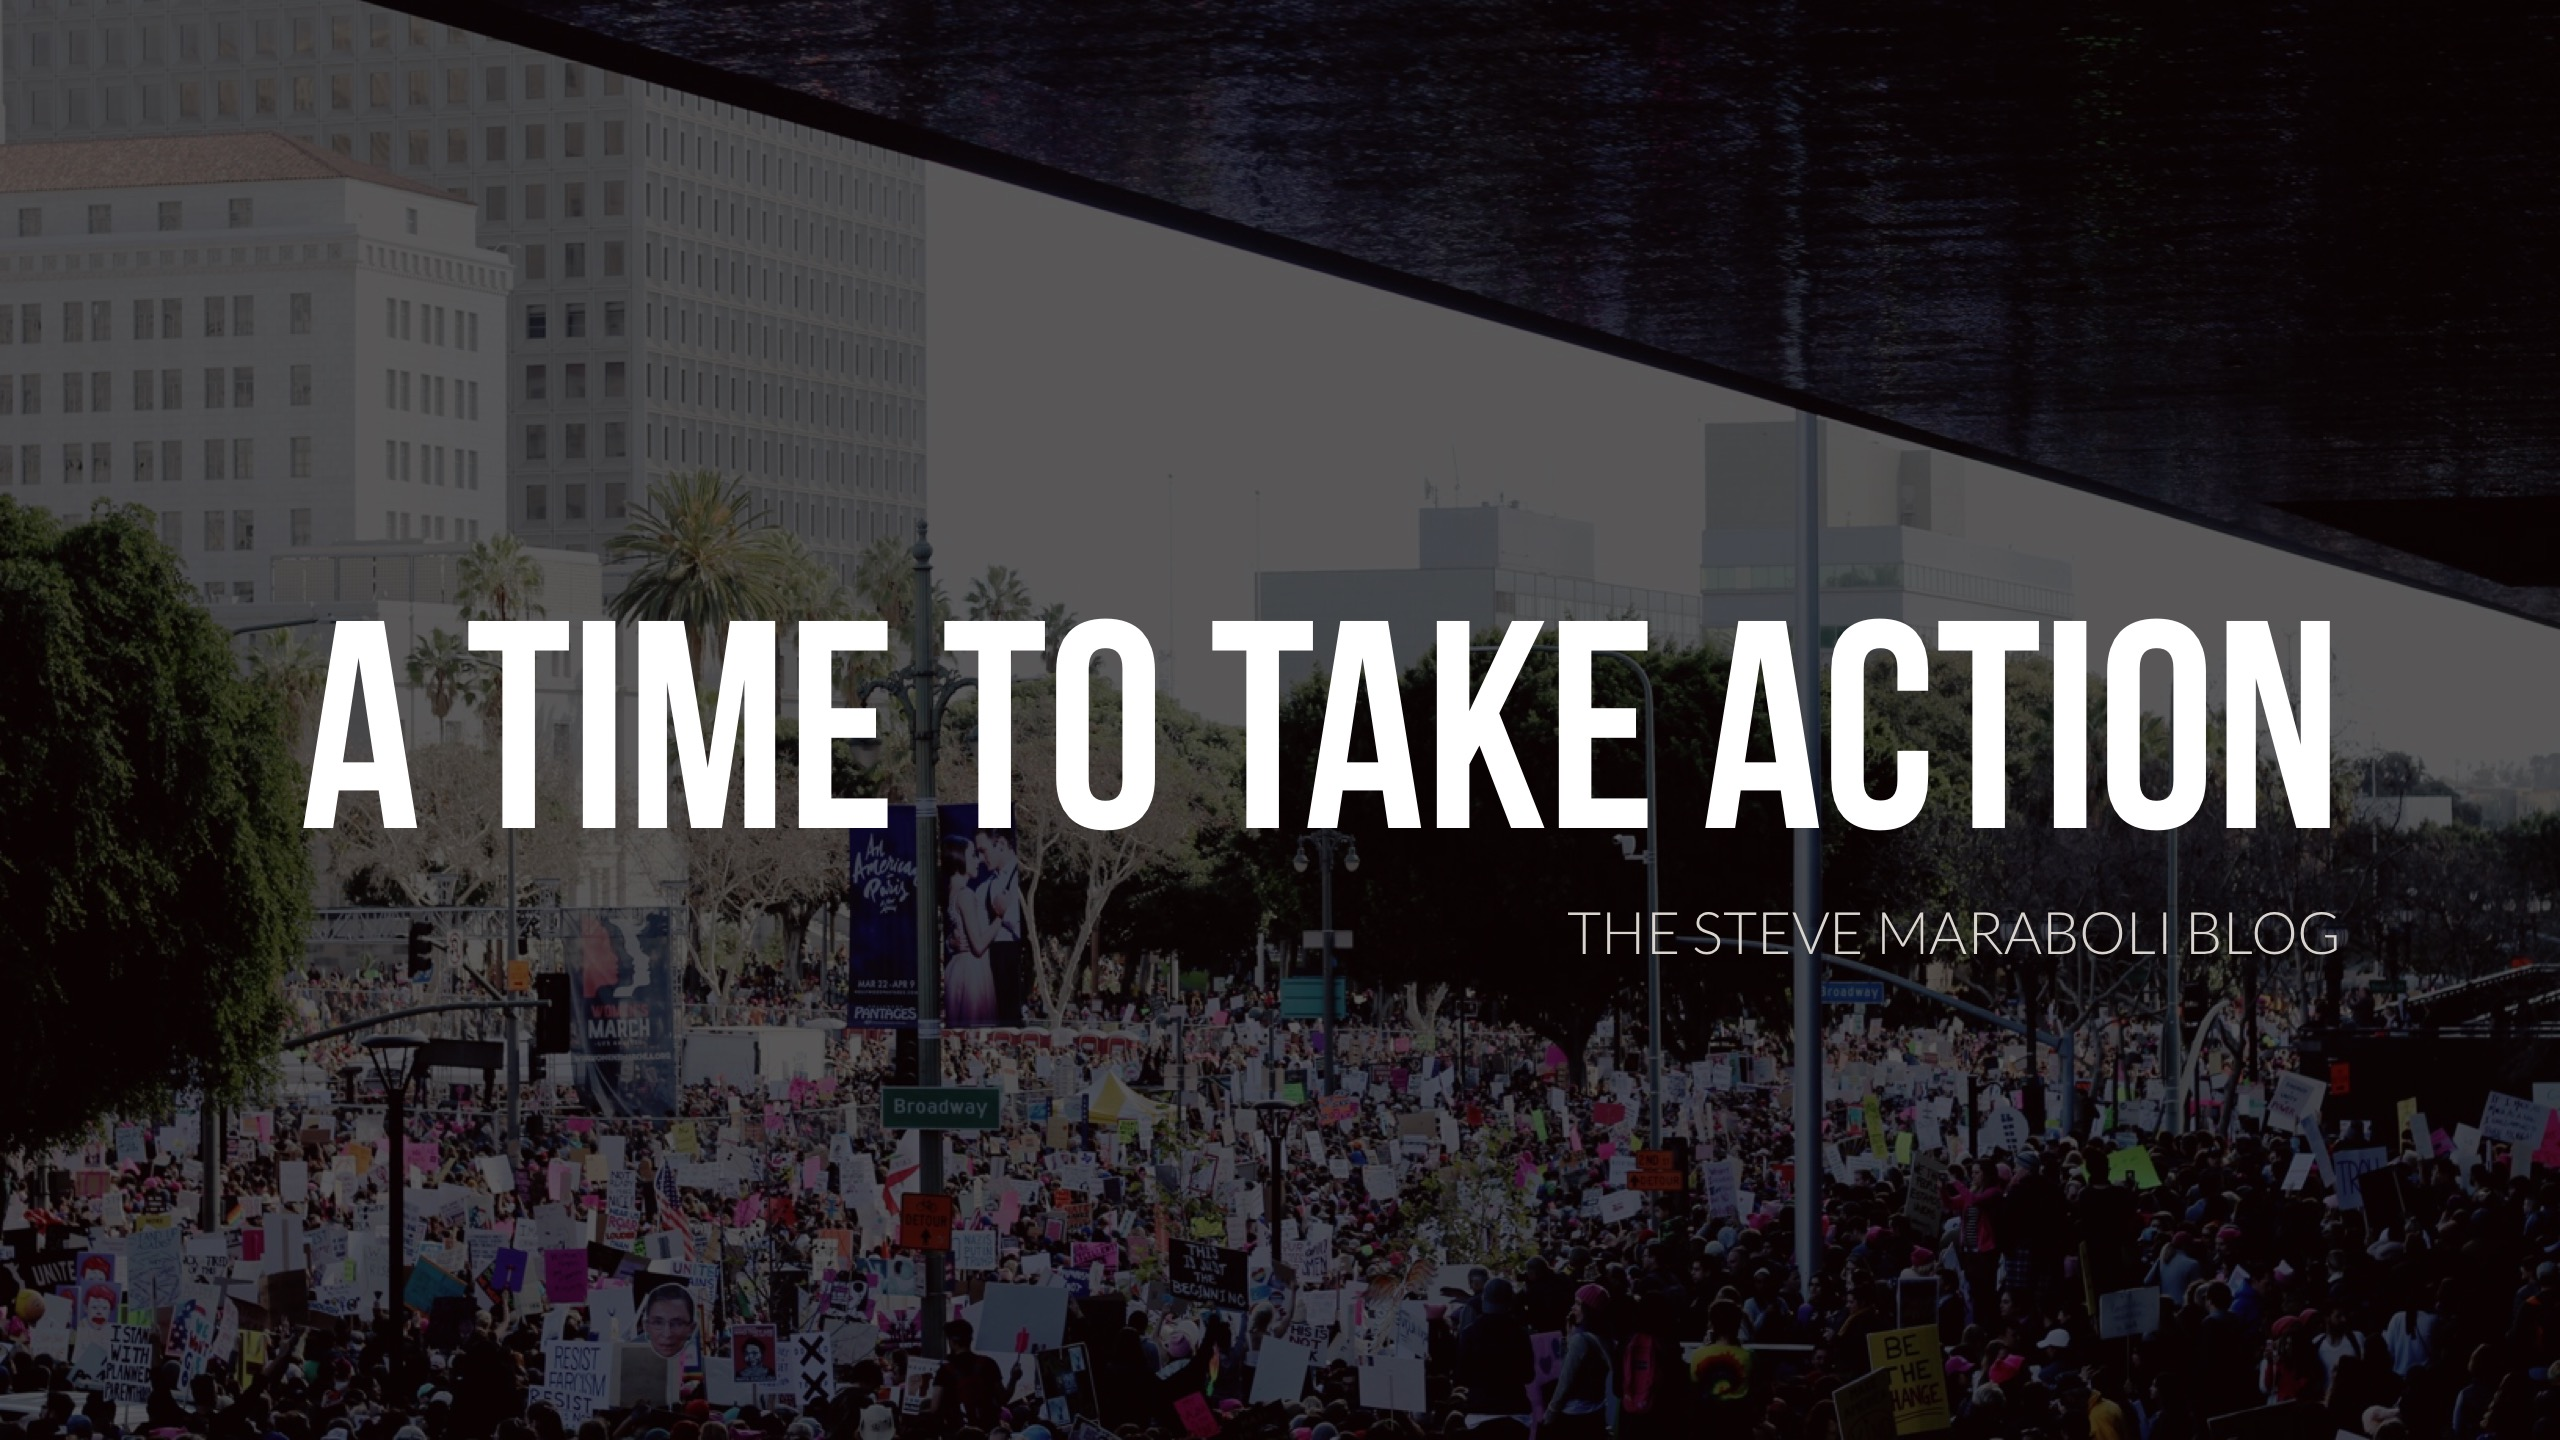 A Time to Take Action